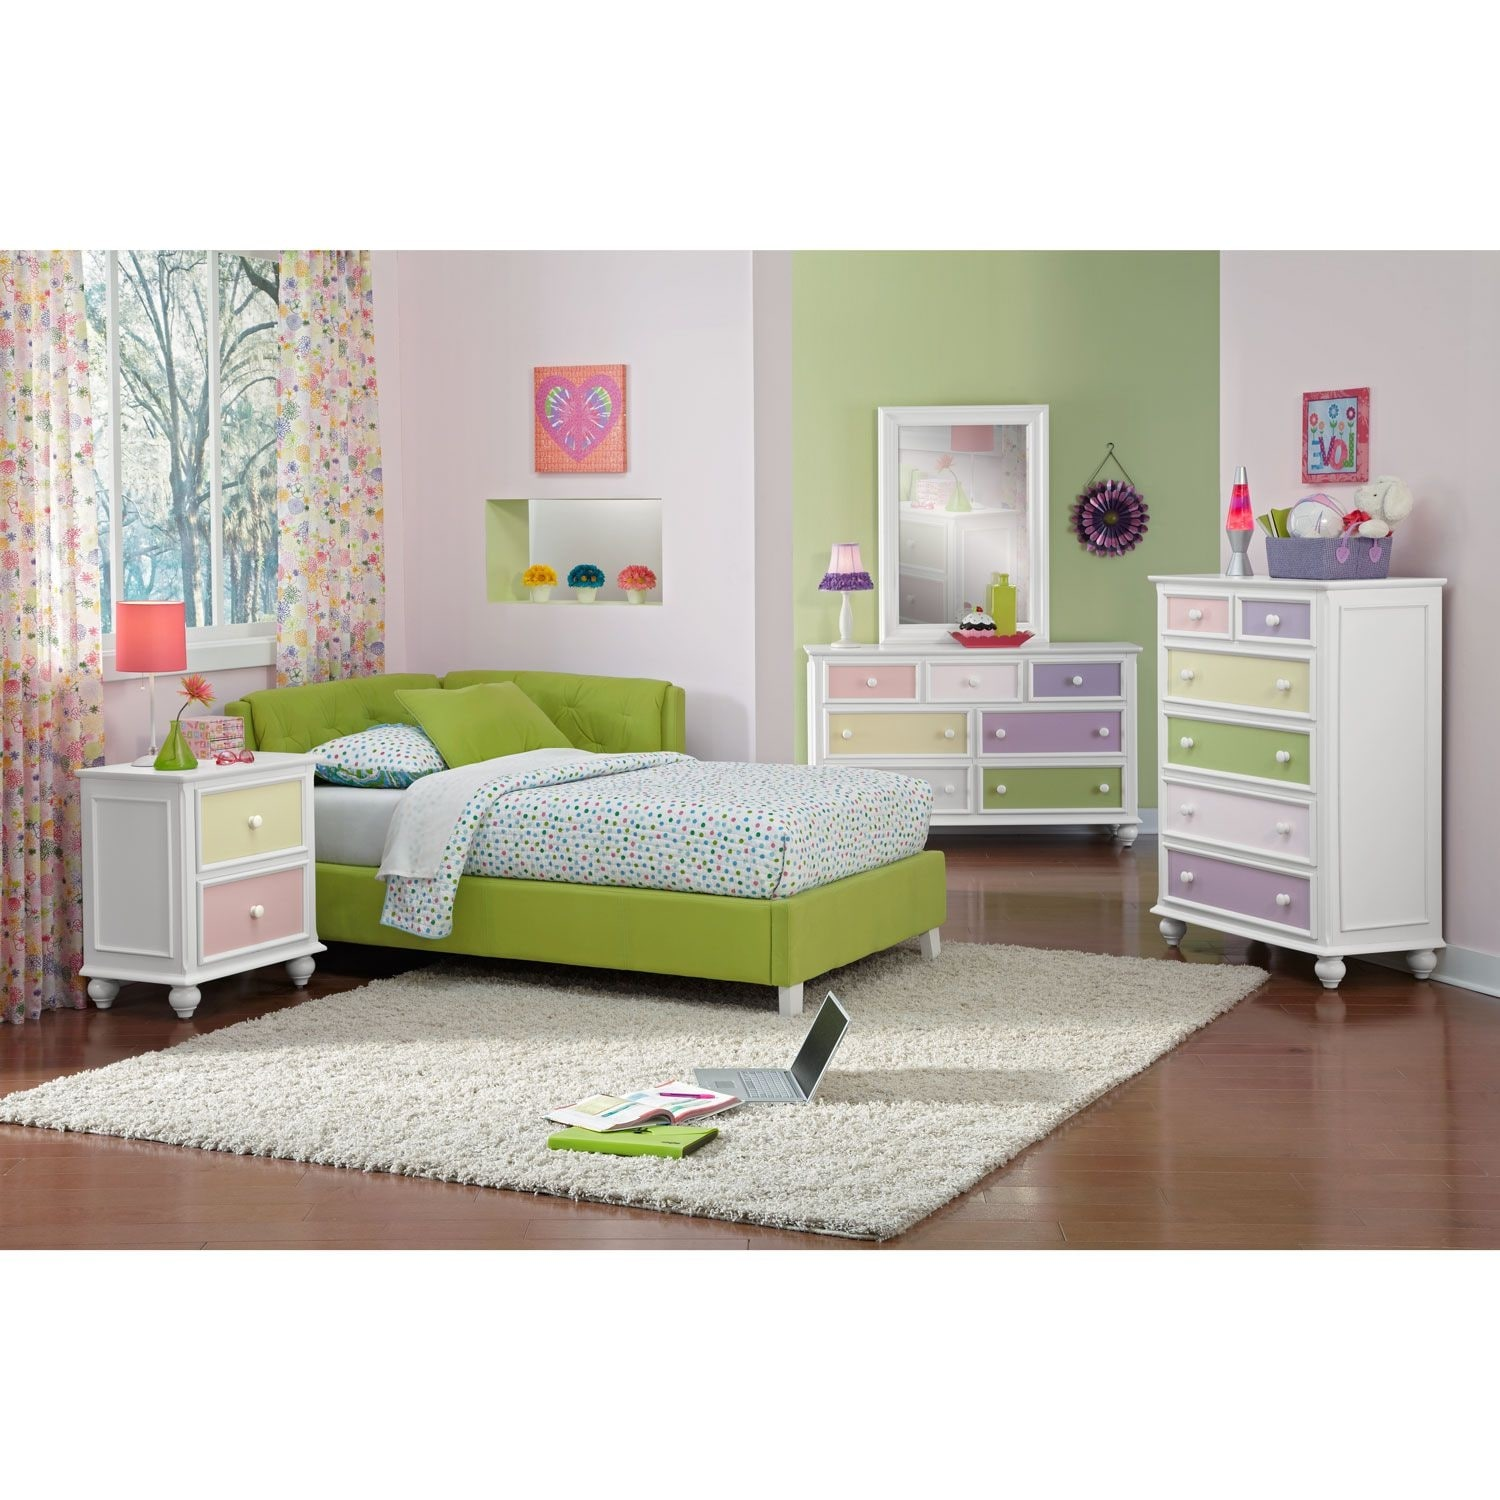 Corner twin bed bedroom sets for boys - Kids Furniture Jordan Twin Corner Bed Green Hover Touch To Zoom Click To Change Image